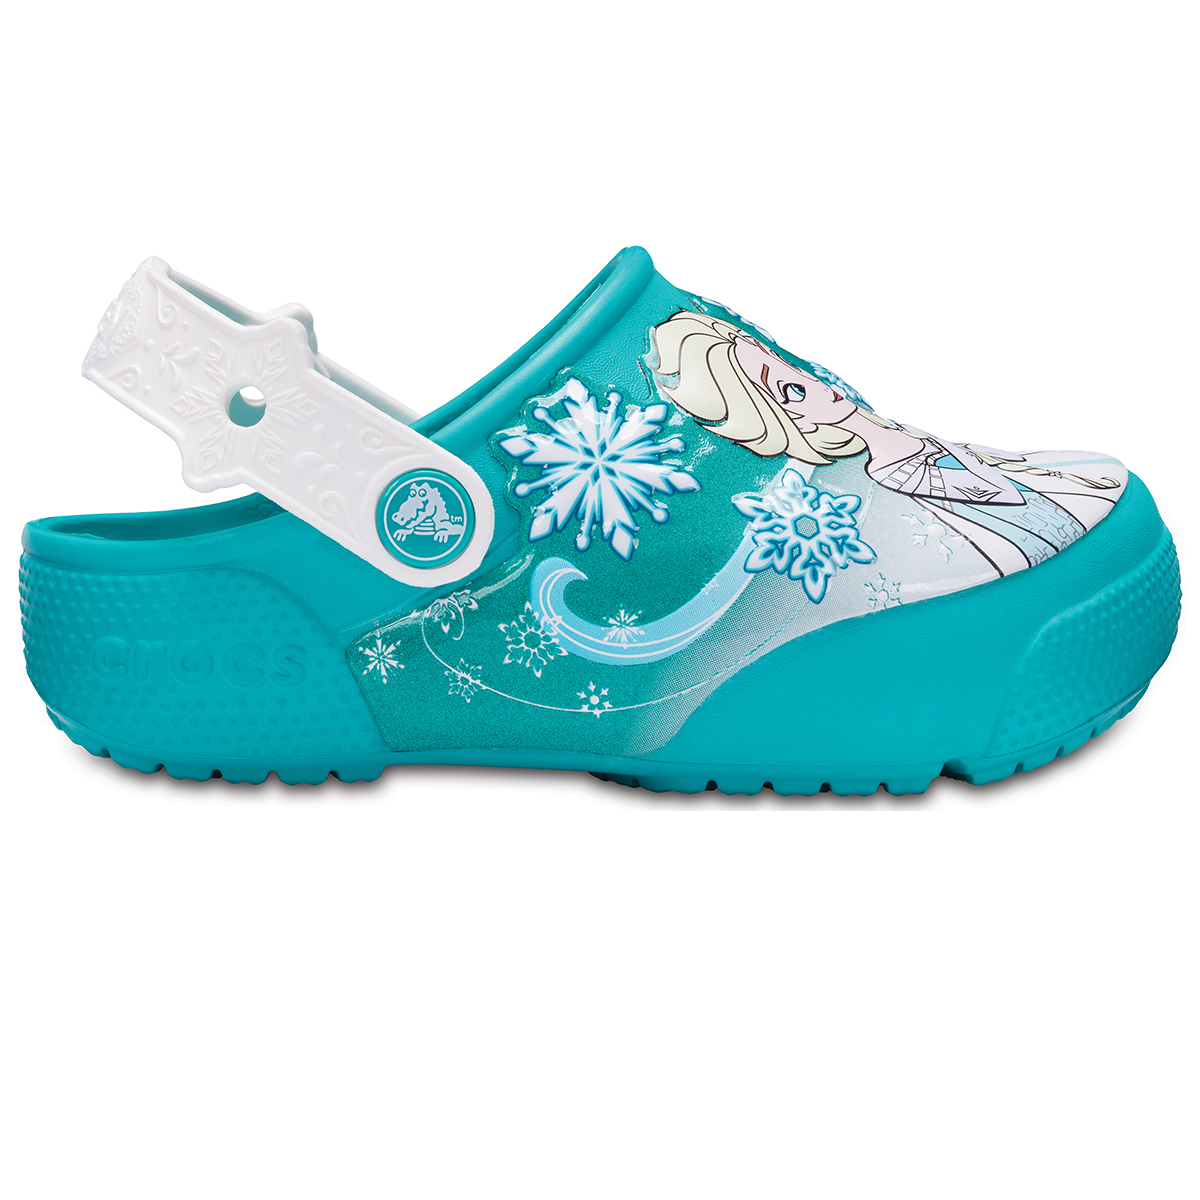 Crocs Fun Lab Frozen Lights Clog K - Tropikal Deniz mavisi